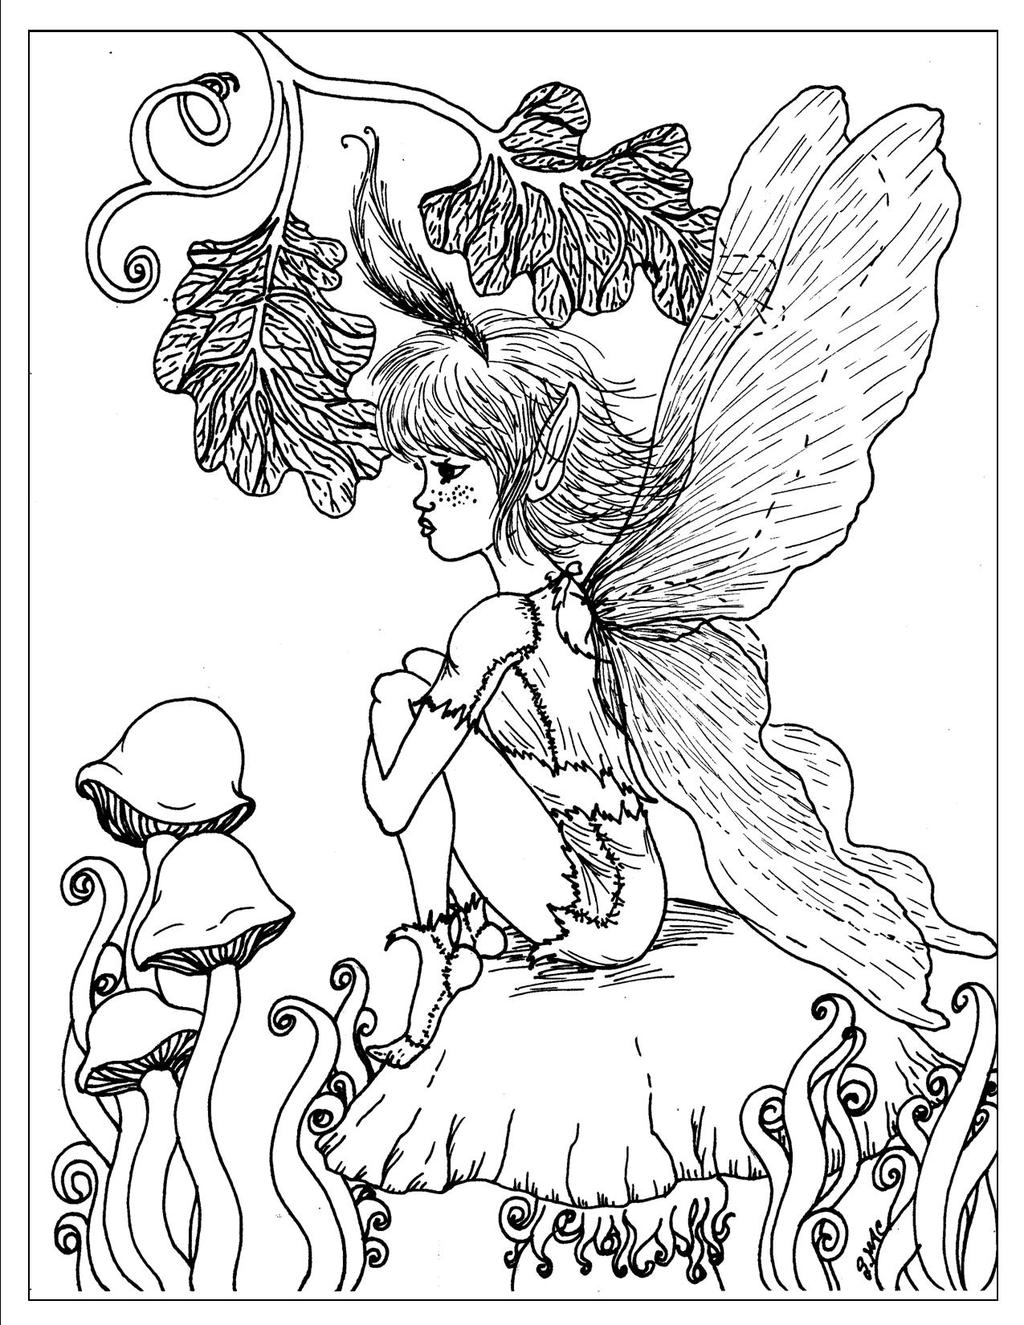 Free Evle with Wings Coloring Pages printable